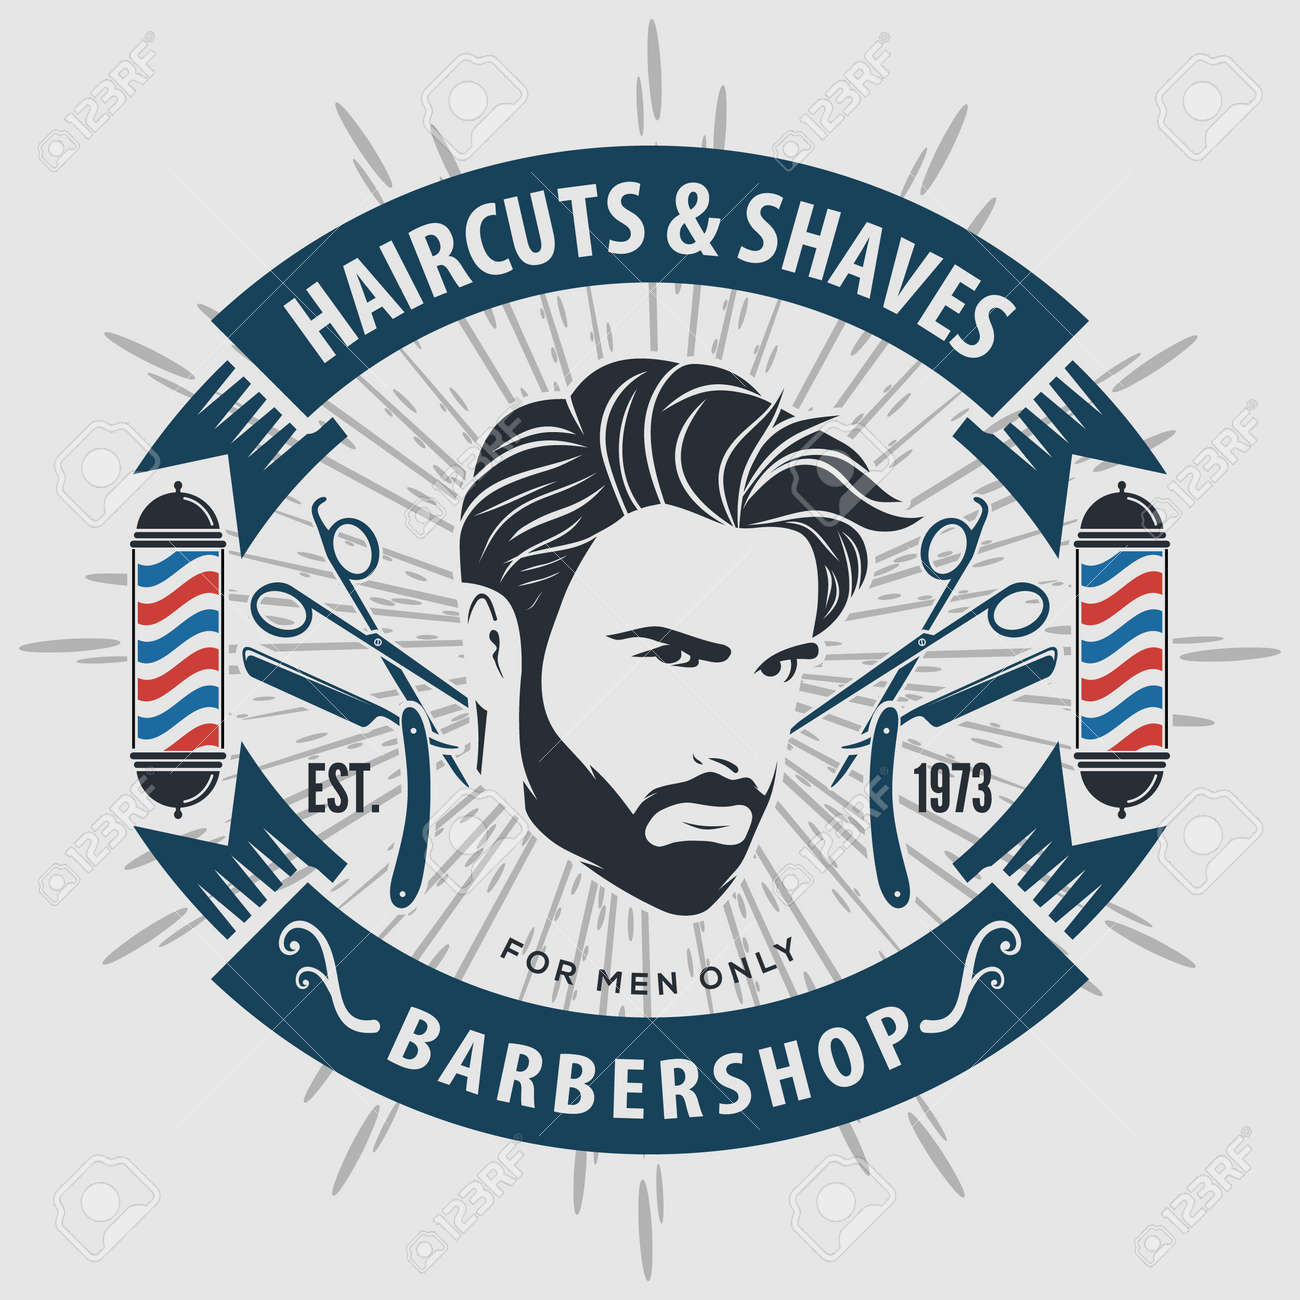 Barber shop poster template with Bearded men - 169500874